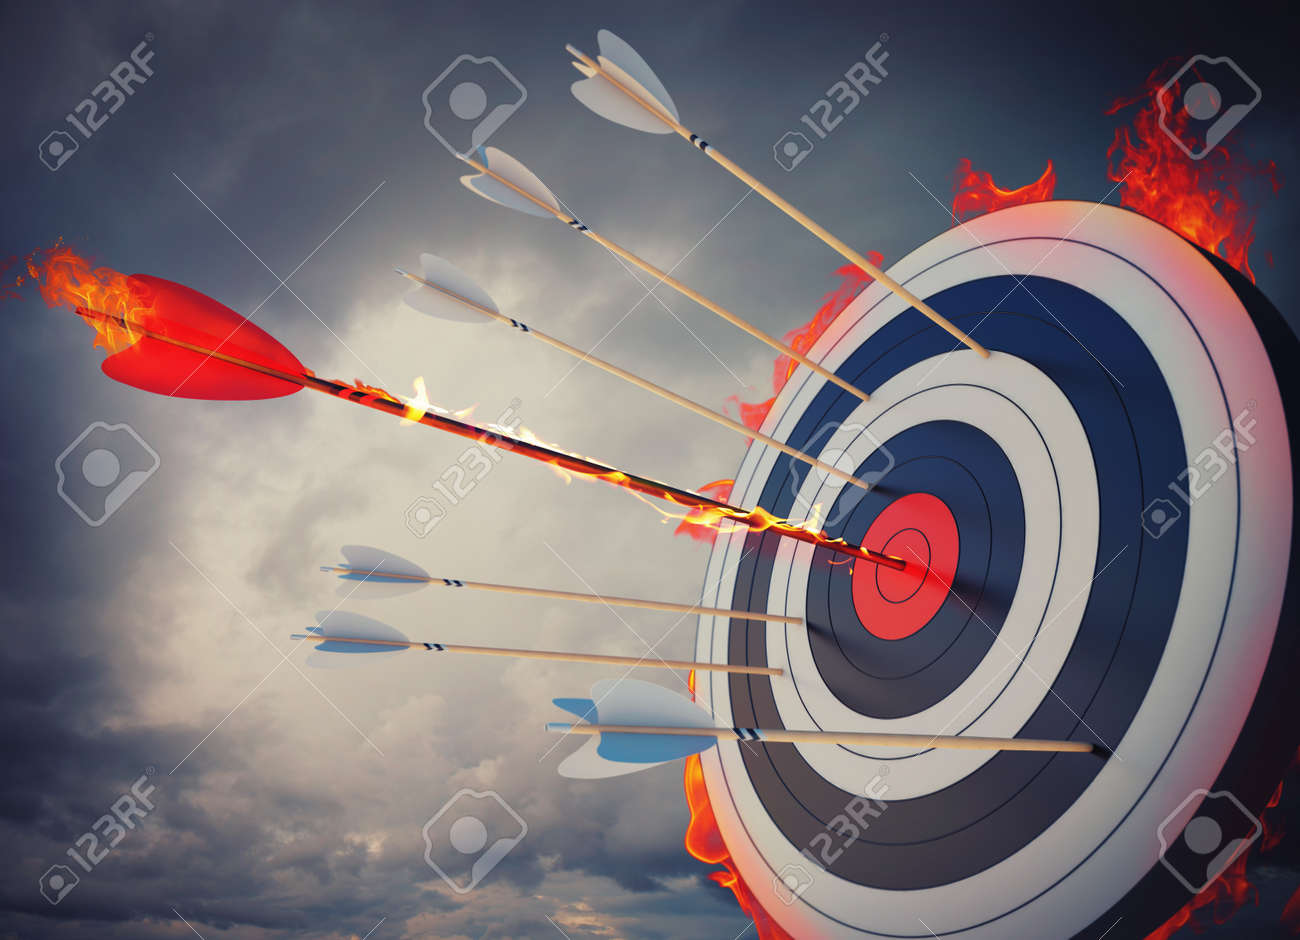 Flaming arrow hitting the center of target Stock Photo - 49634889